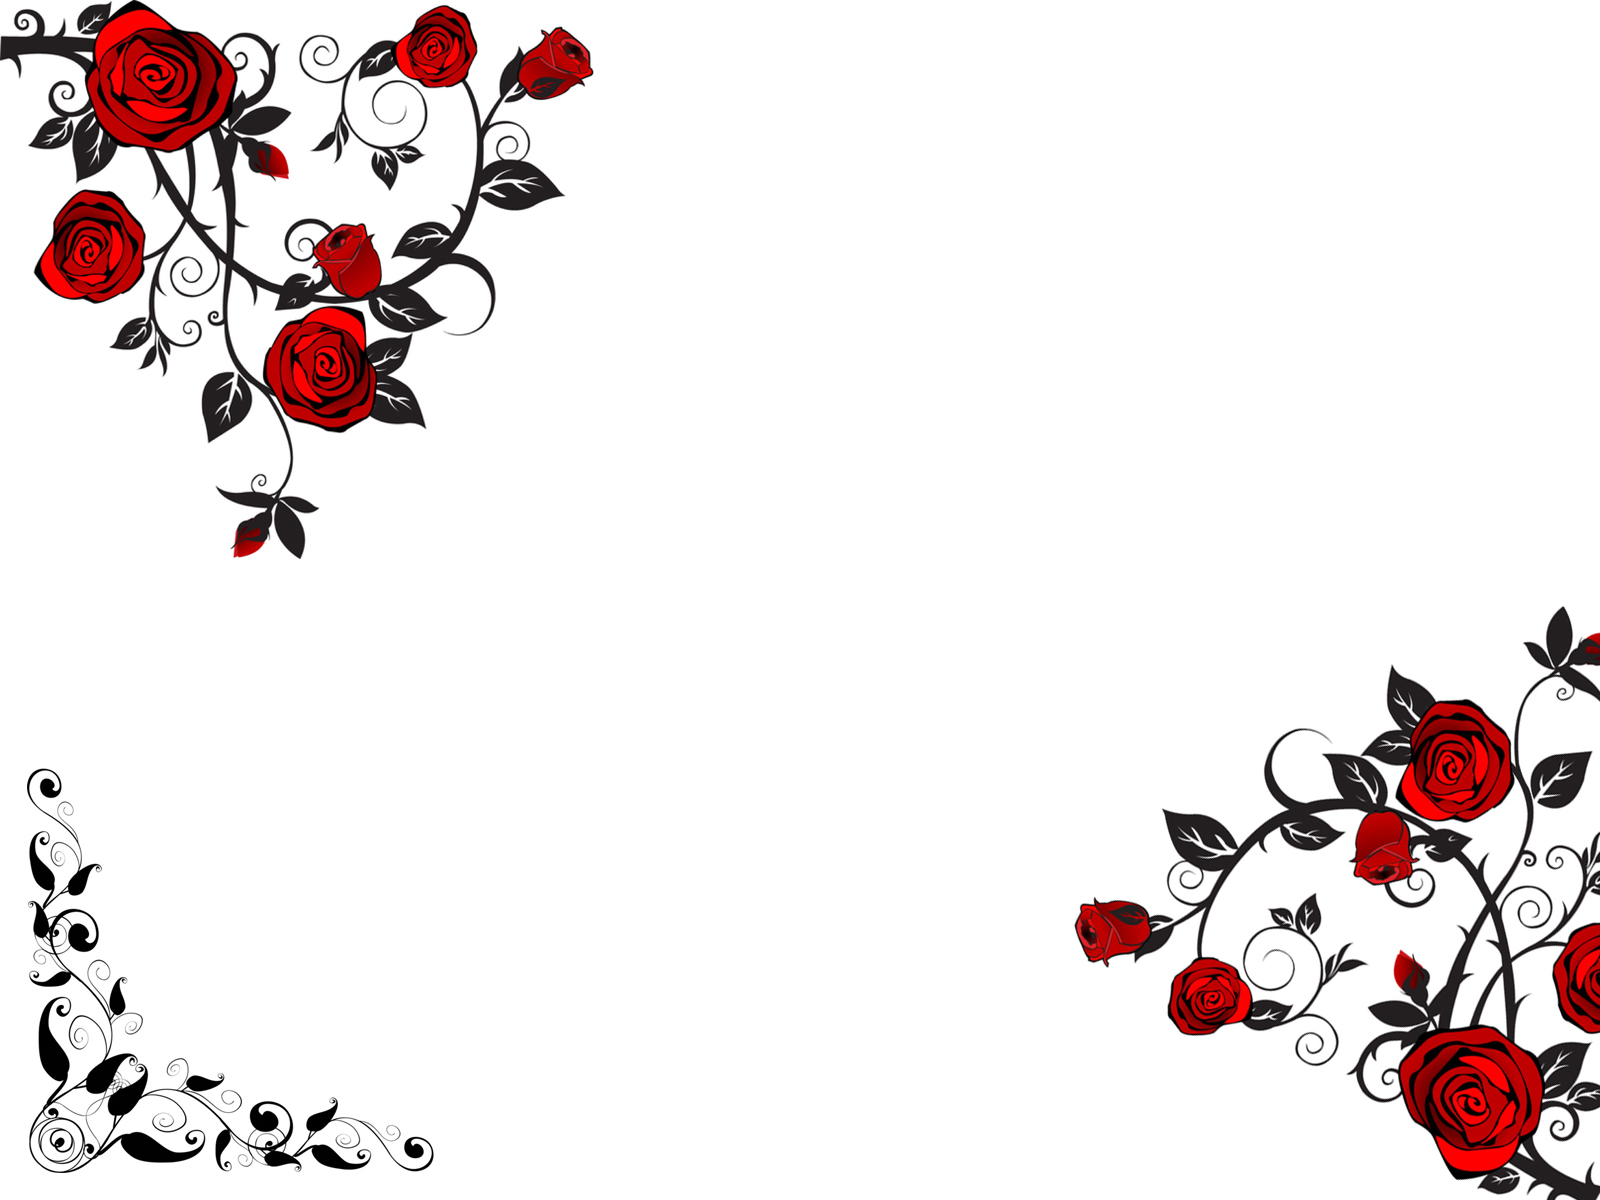 Red Rose Flower Backgrounds Black Flowers Red